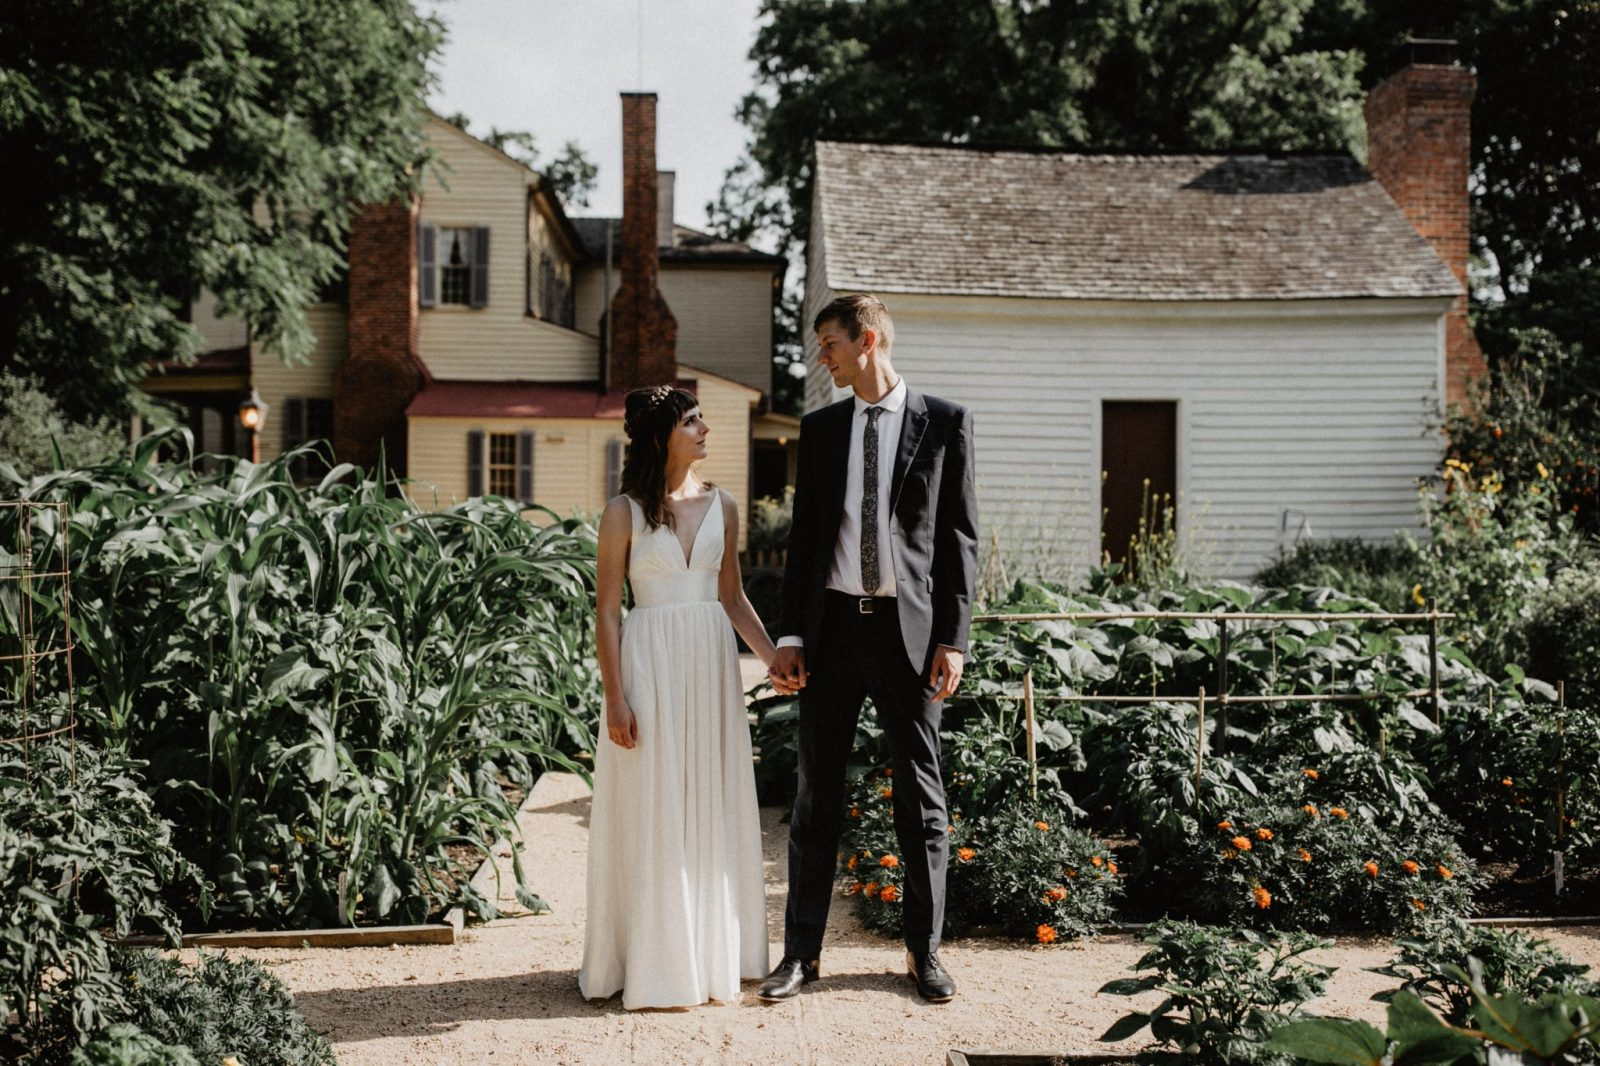 Sustainability-focused bride and groom look to each other as they stand side by side and hold hands in Historic Mordecai Park's garden.